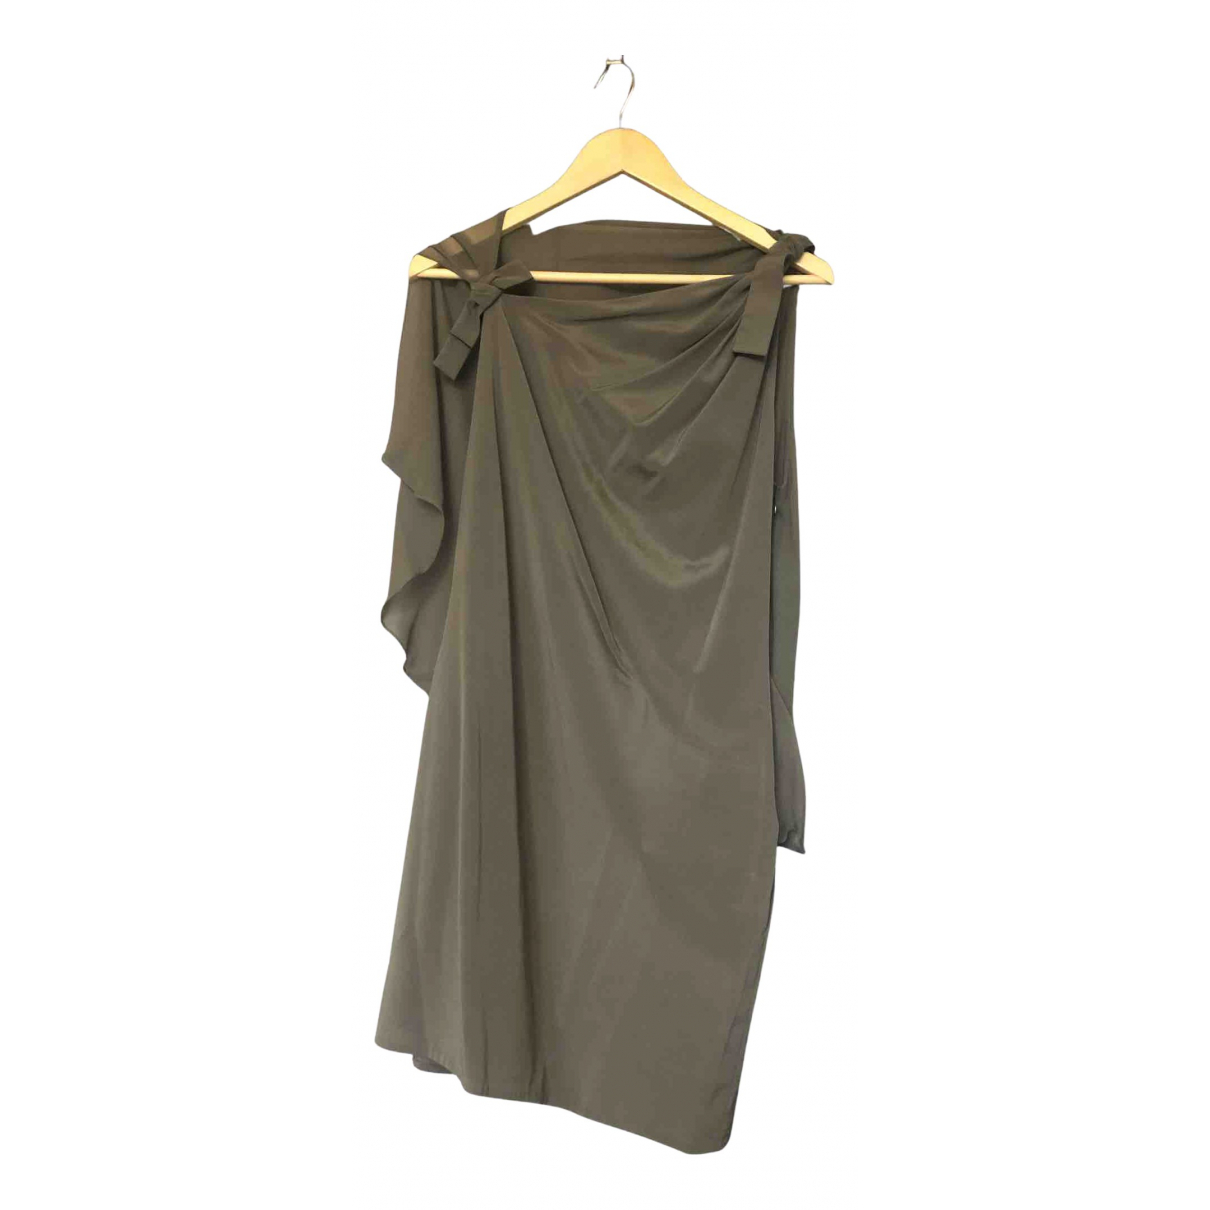 3.1 Phillip Lim \N Kleid in  Khaki Seide